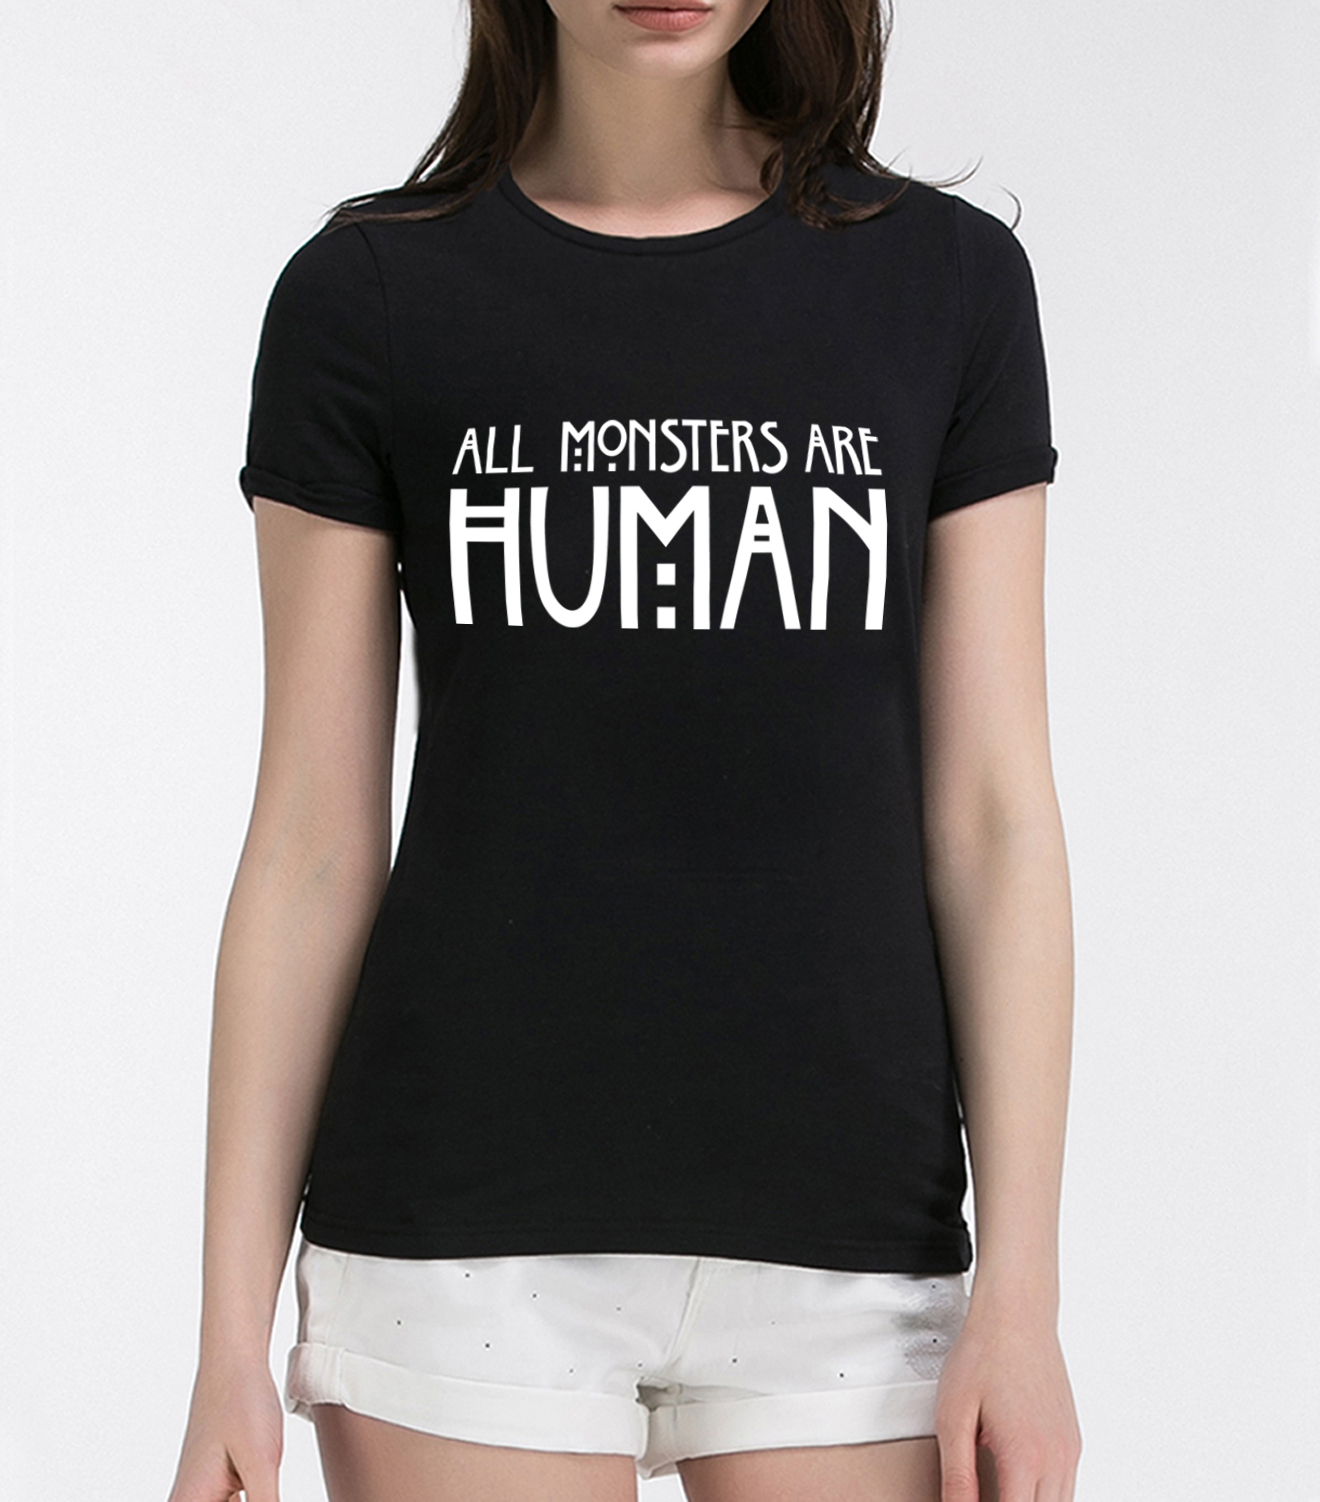 T black shirt rock - 2016 All Monsters Are Human Women Black Cotton T Shirt Girl Tops Tee Shirt T